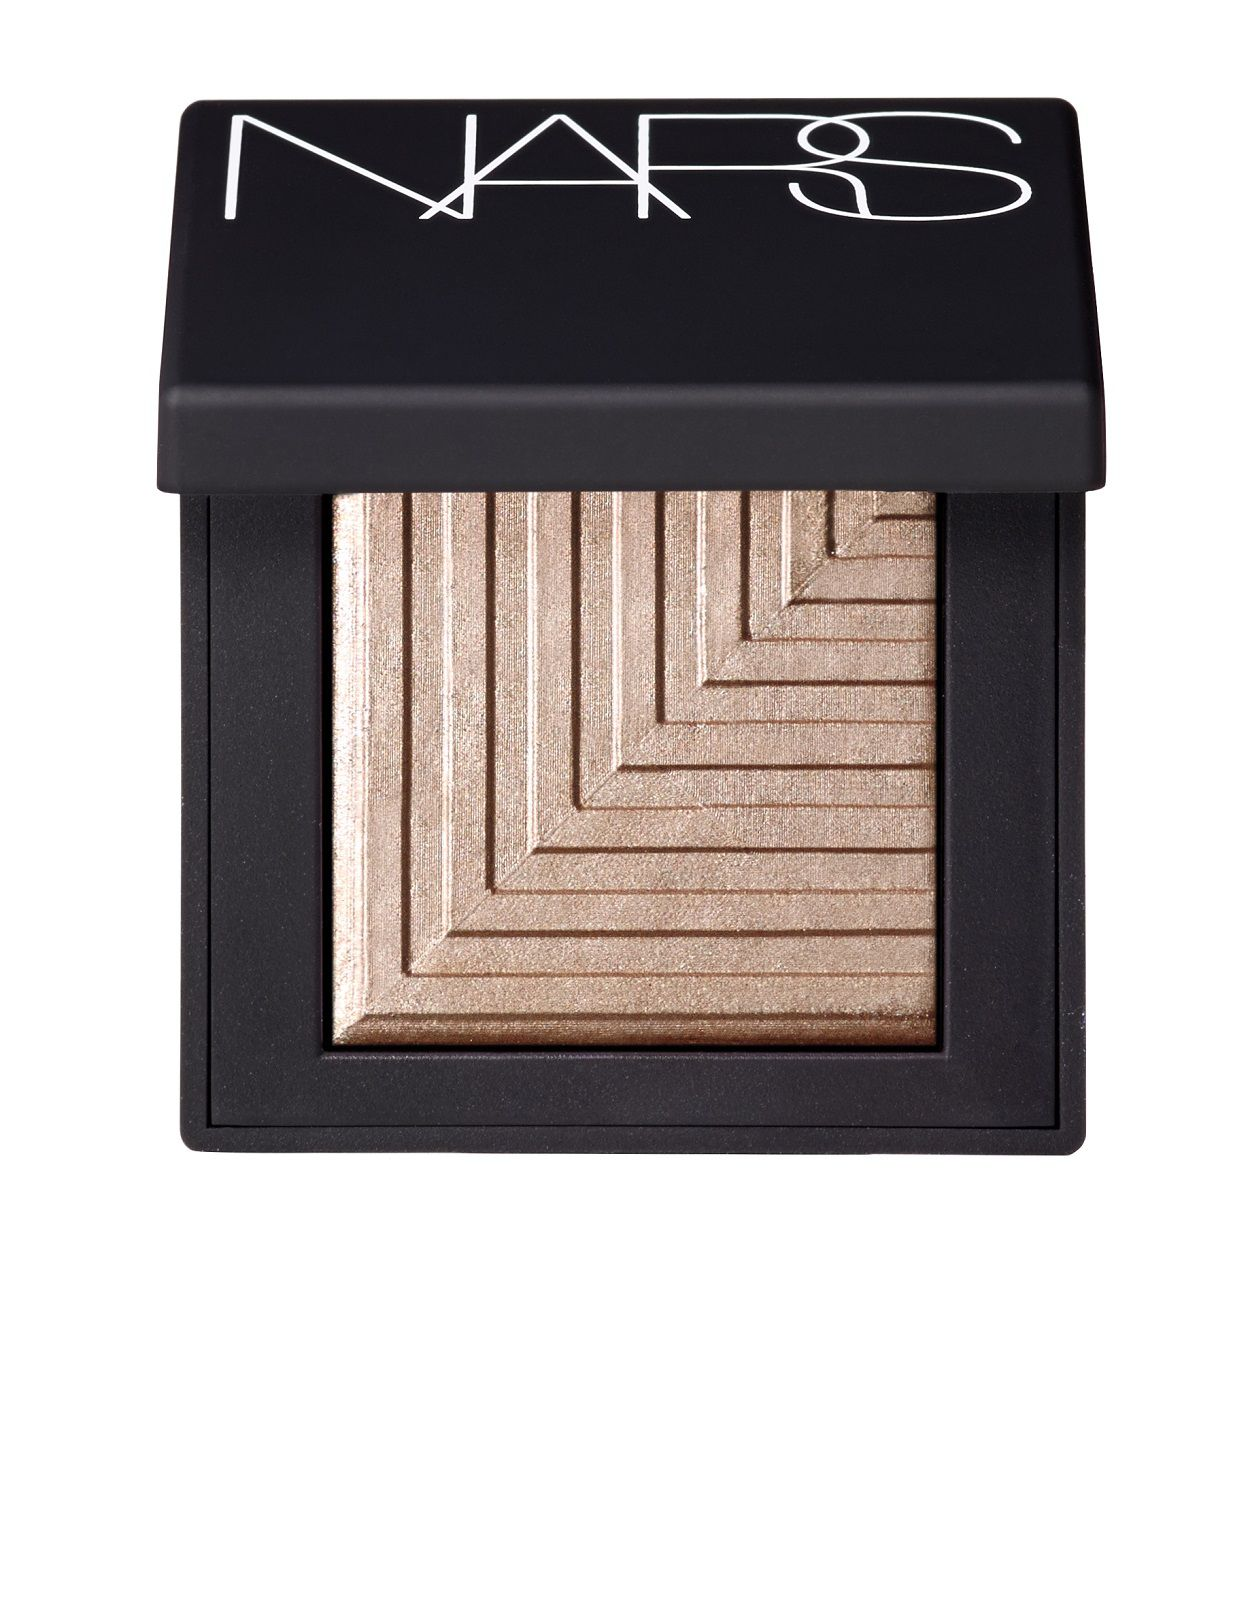 Nars Cosmetics DualIntensity Eyeshadow Himalia